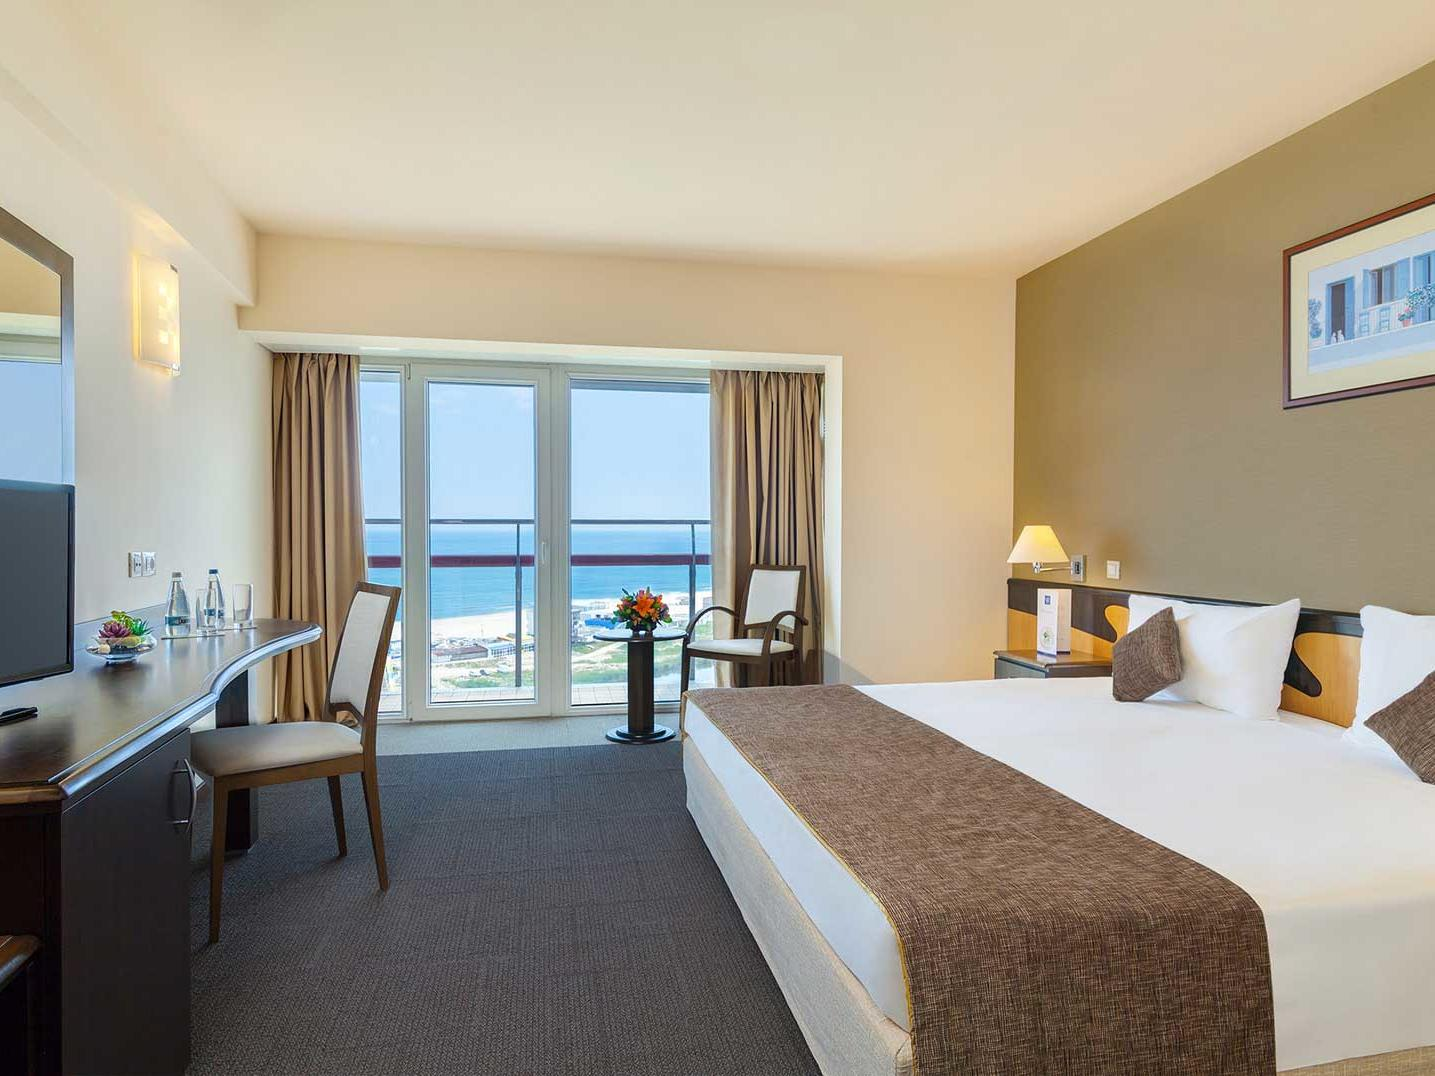 King Junior Suite at Ana Hotels Europa Eforie Nord